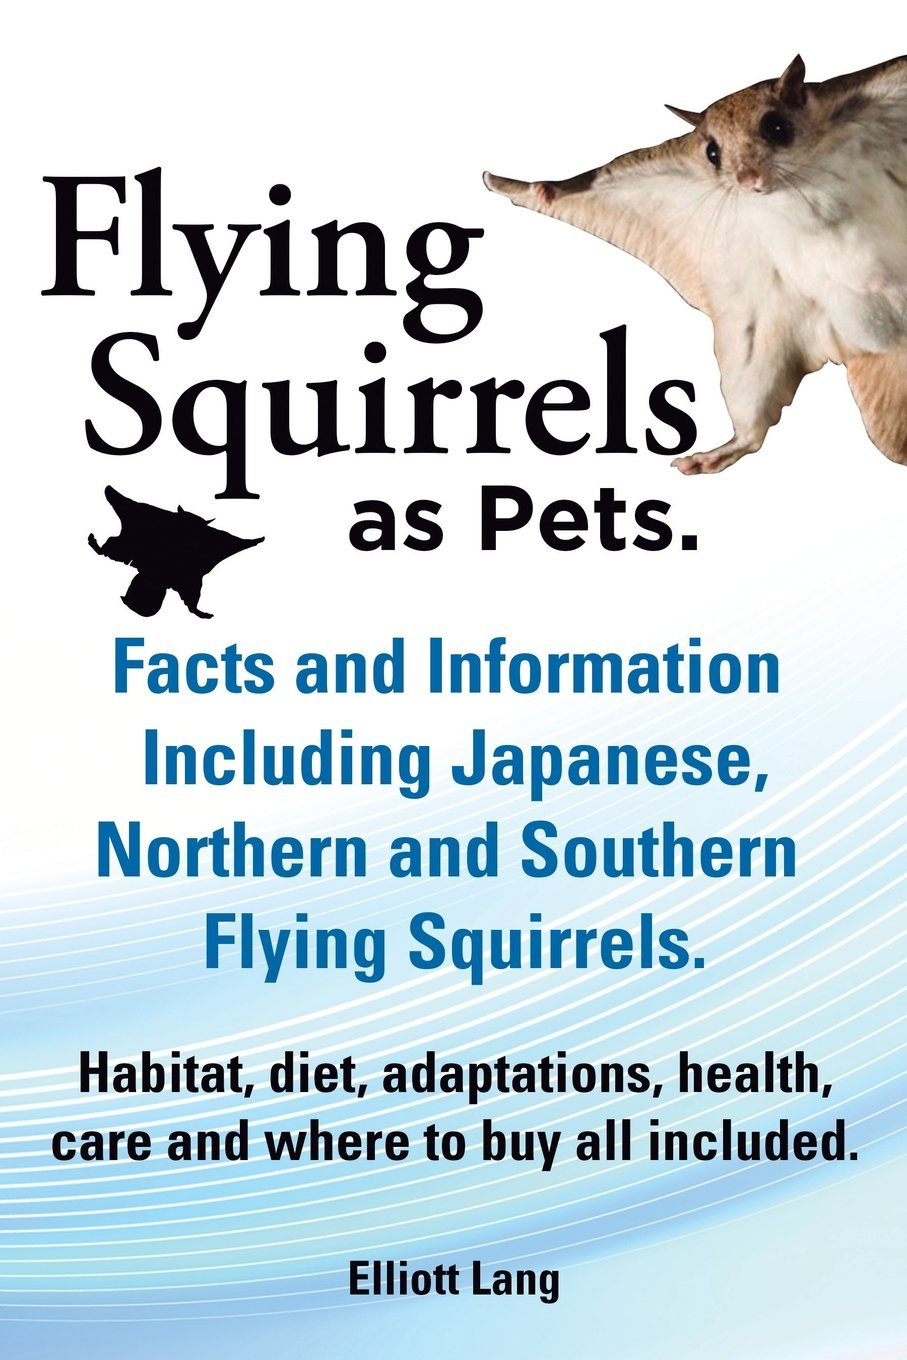 Flying Squirrels as Pets. Facts and Information. Including Japanese, Northern and Southern Flying Squirrels. Habitat, Diet, Adaptations, Health, Care pdf epub